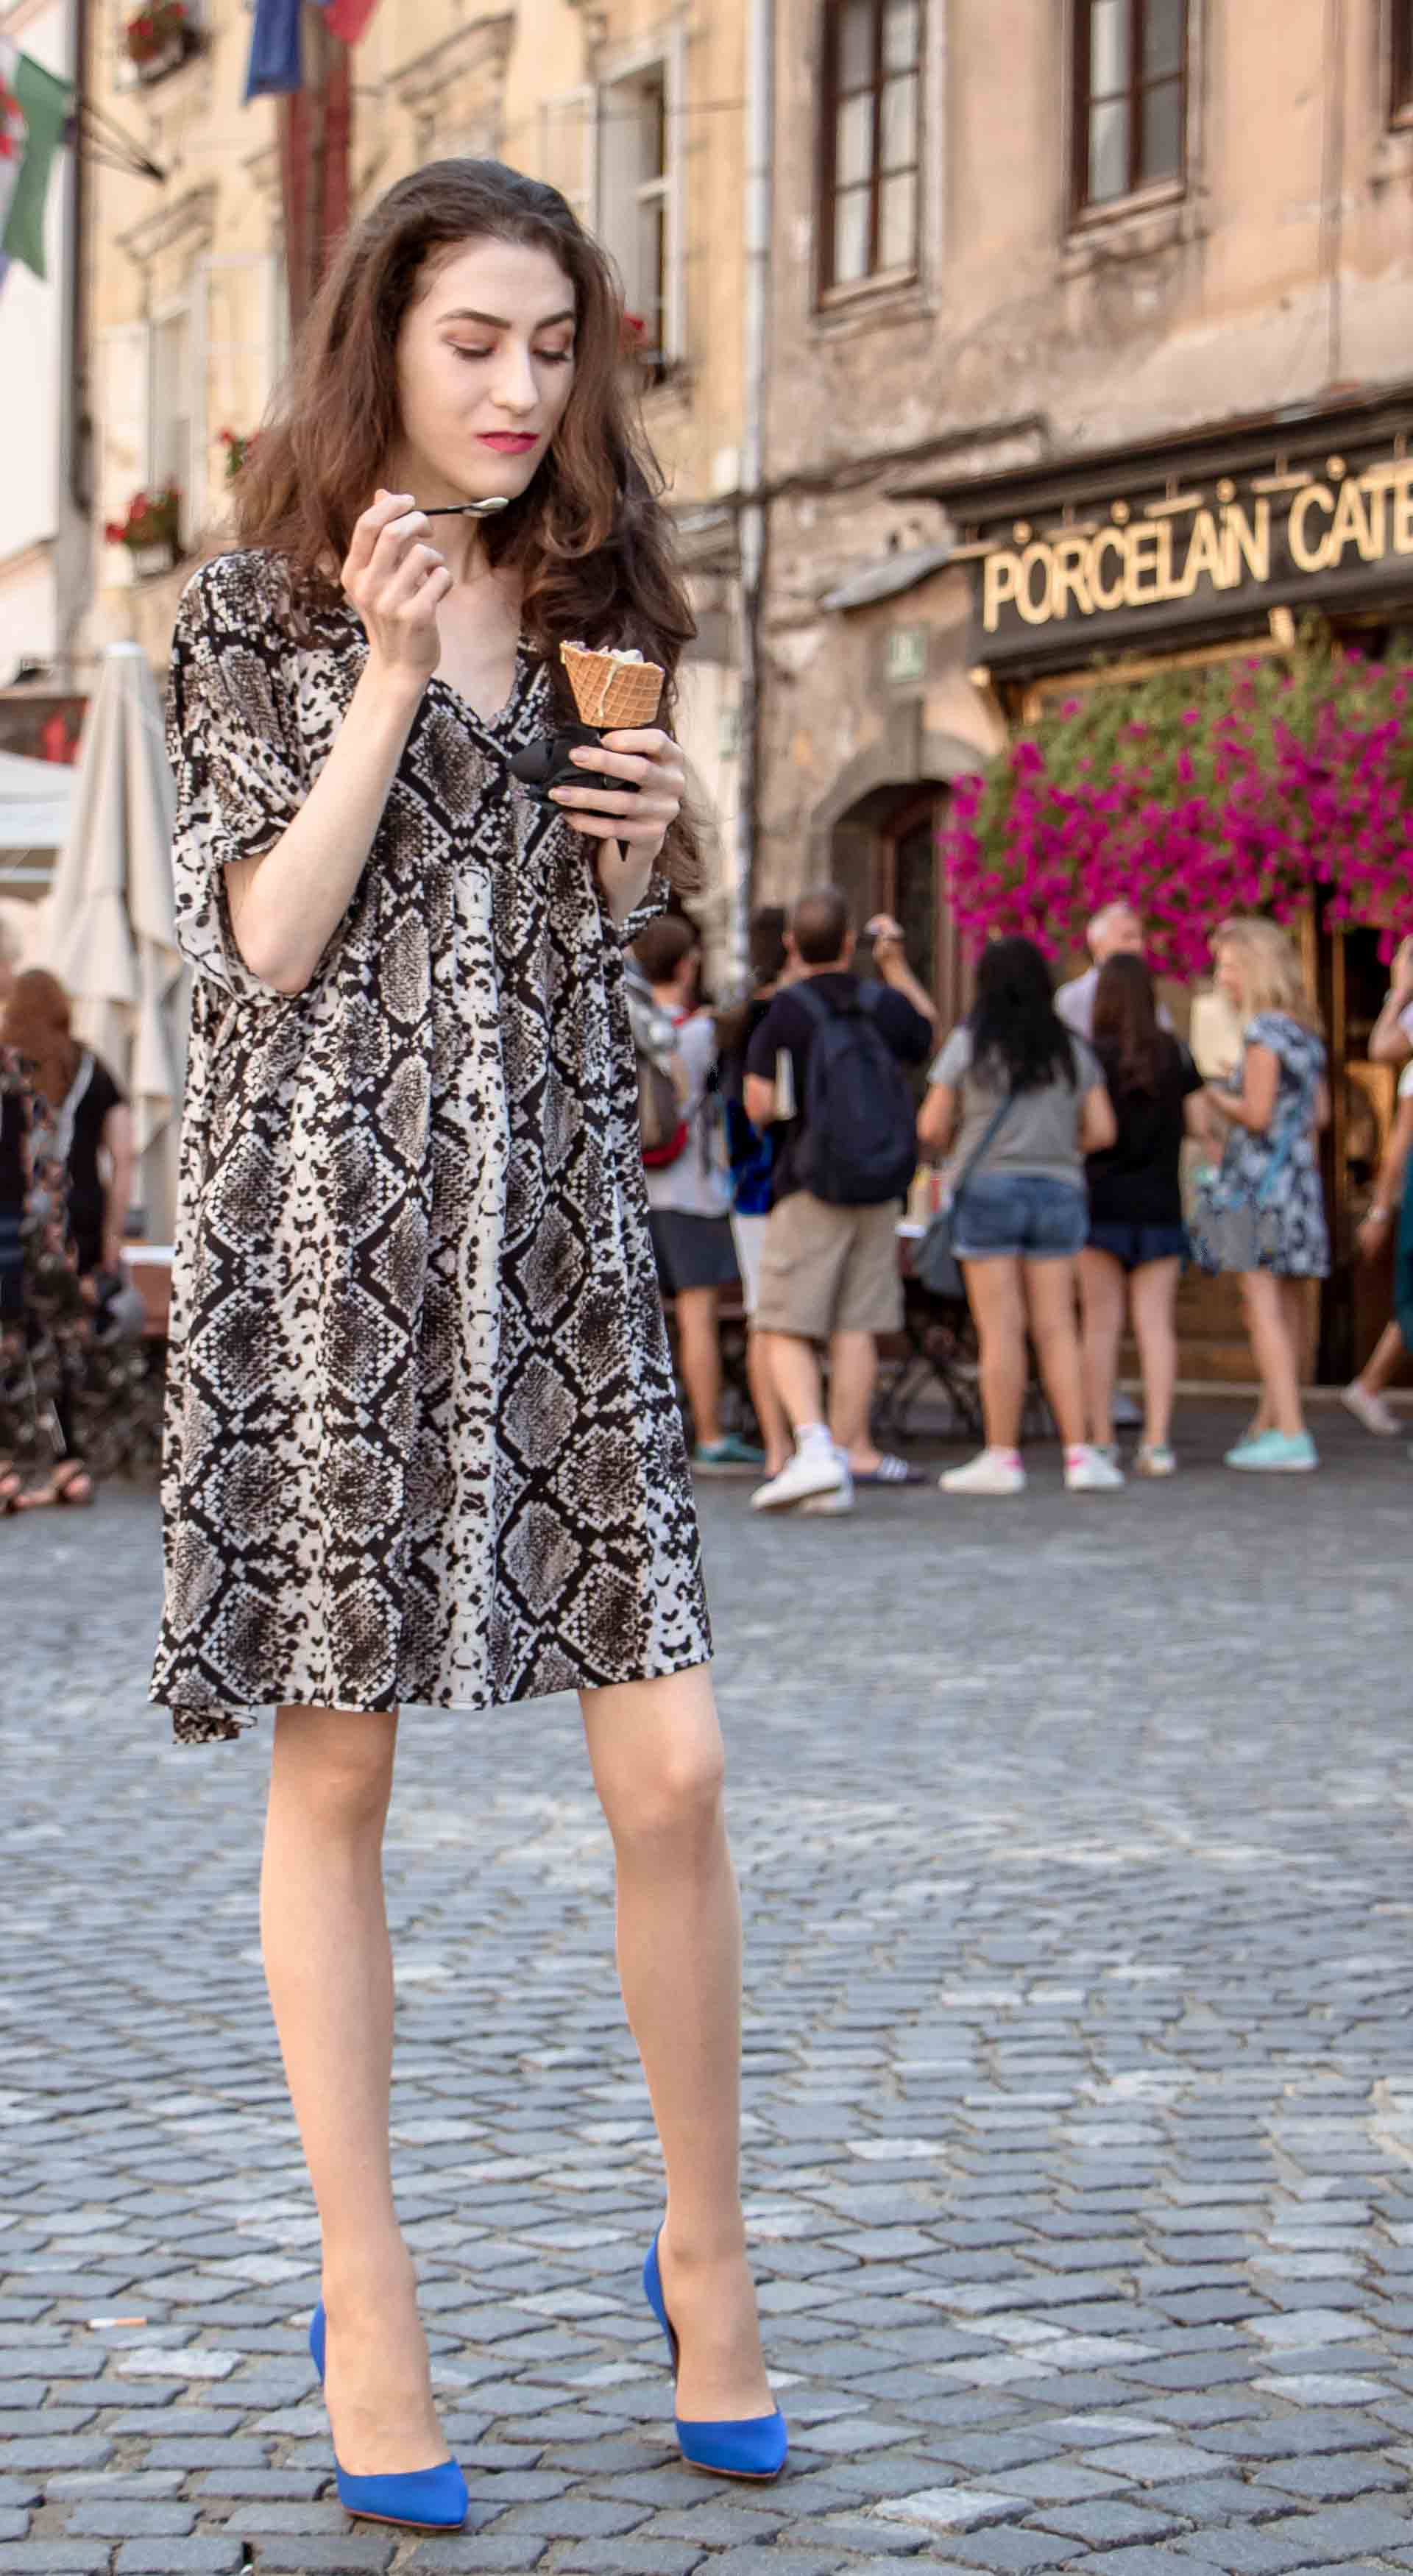 Beautiful Slovenian Fashion Blogger Veronika Lipar of Brunette from Wall dressed in flowing short snake print dress from Zara, blue Gianvito Rossi satin pumps, eating ice cream on the street